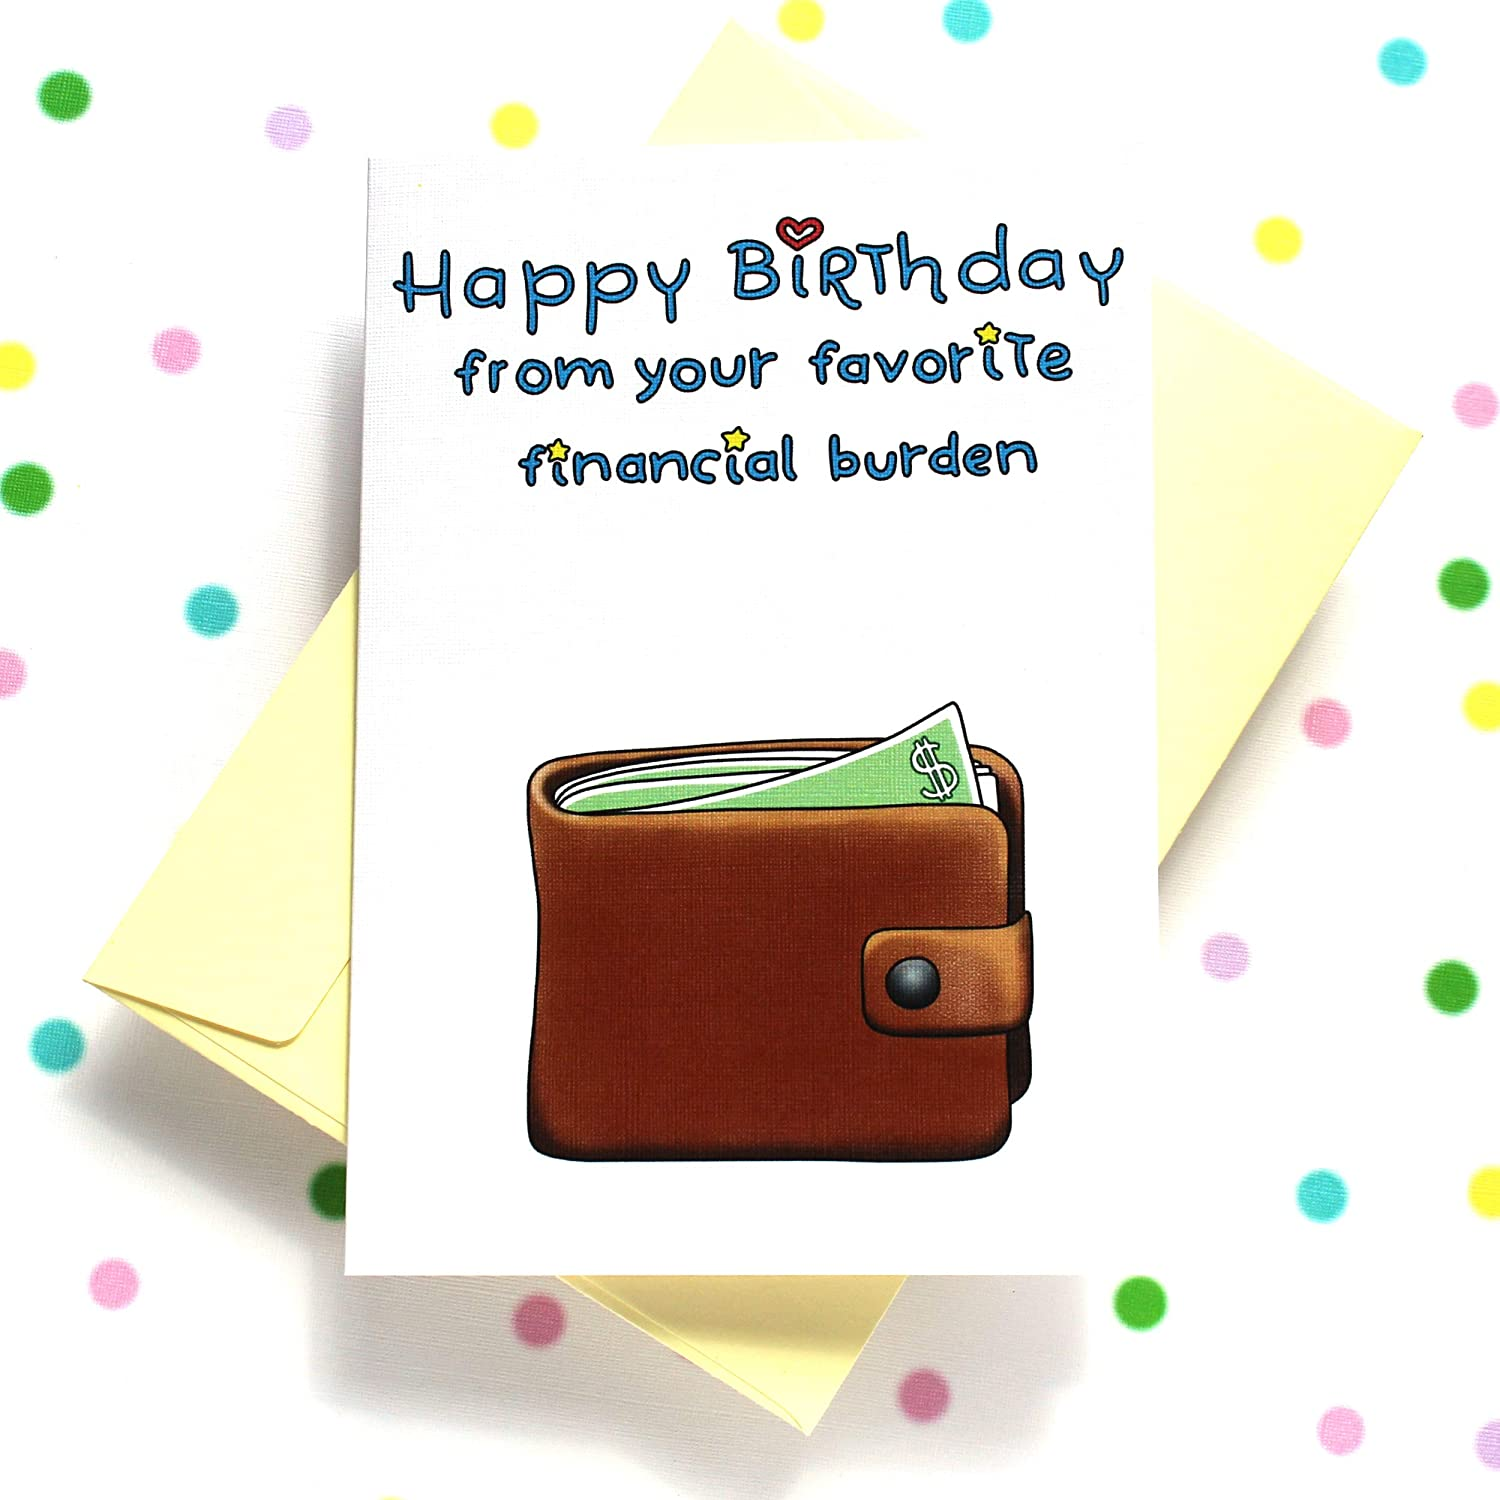 Funny Dad Birthday Card, Happy Birthday Card for Daddy - Happy Birthday  from Your Favorite Financial Burden Card - Folded Greeting Card with  Envelope,